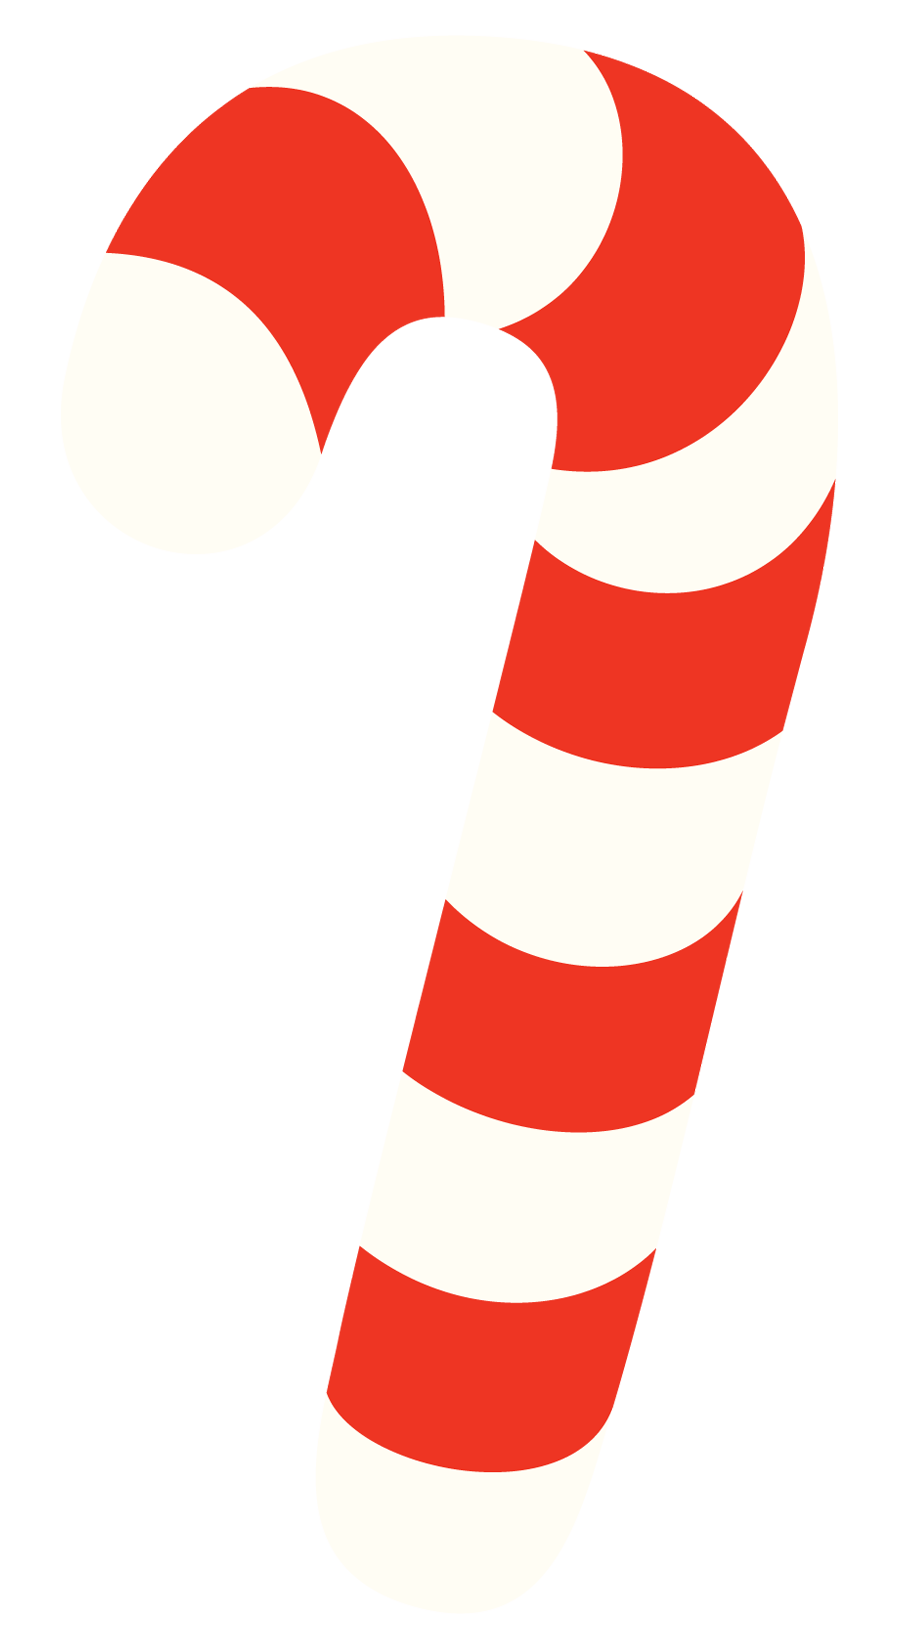 Candy cane clipart png. Free to use cliparts